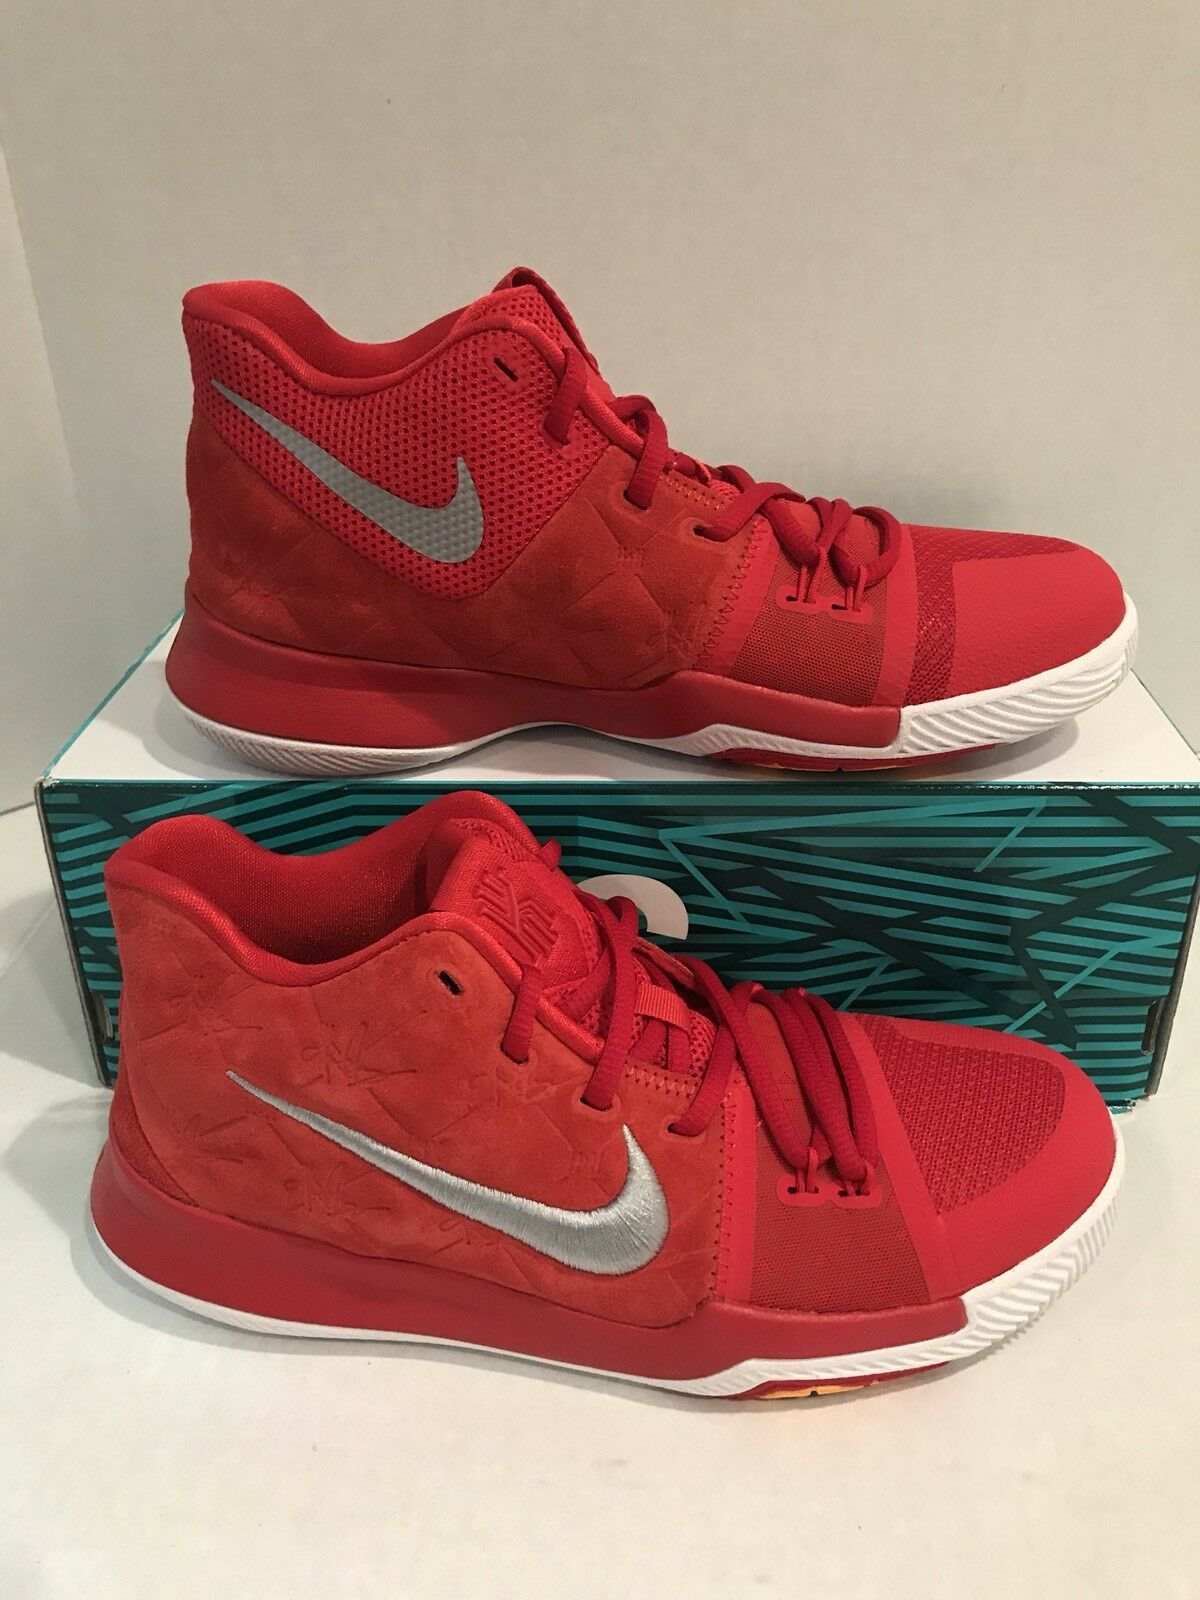 on sale a04e5 bab22 Nike Kyrie 3 University Red Suede GS Grade School Size 859466 601